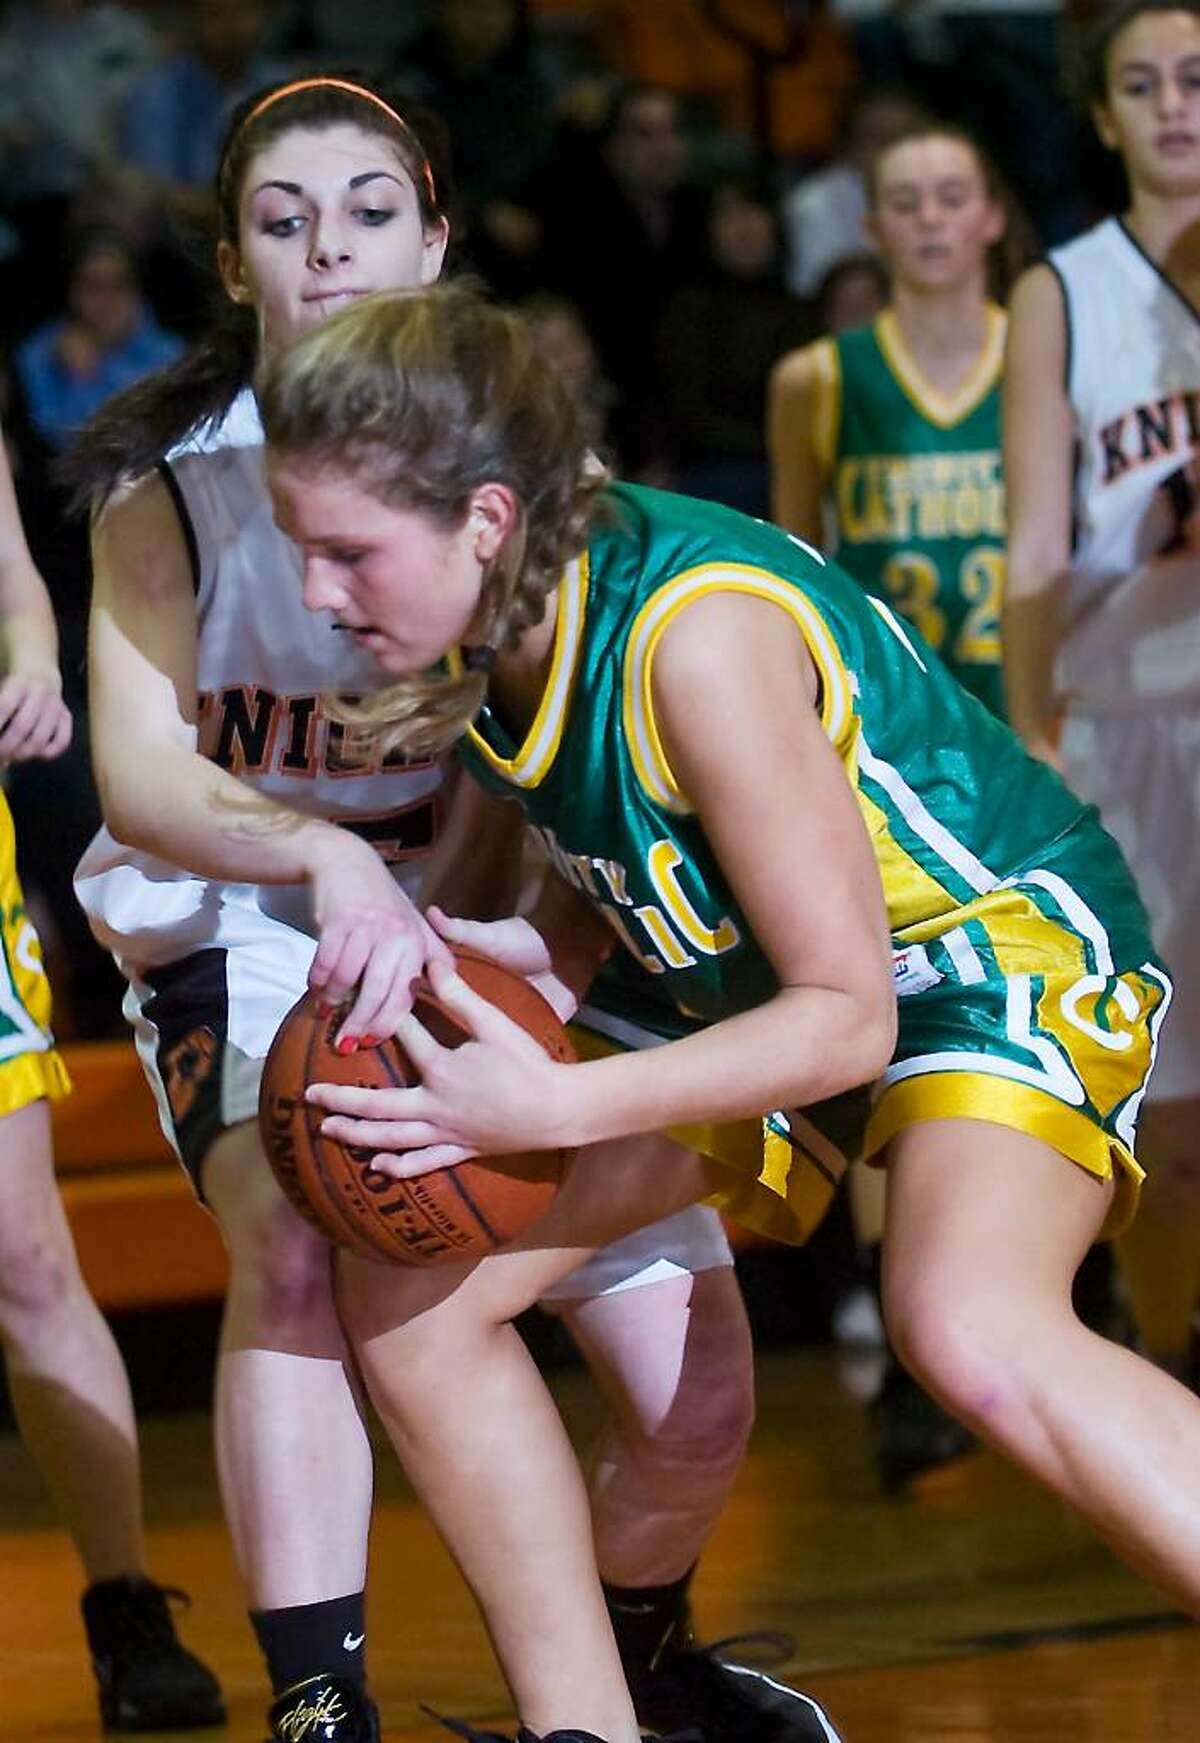 Stamford High School's Brittany Duffin and Trinity Catholic's Clare O'Leary battle for control of the ball during the girls basketball city title game in Stamford, Conn. on Tuesday, Feb. 9, 2010.